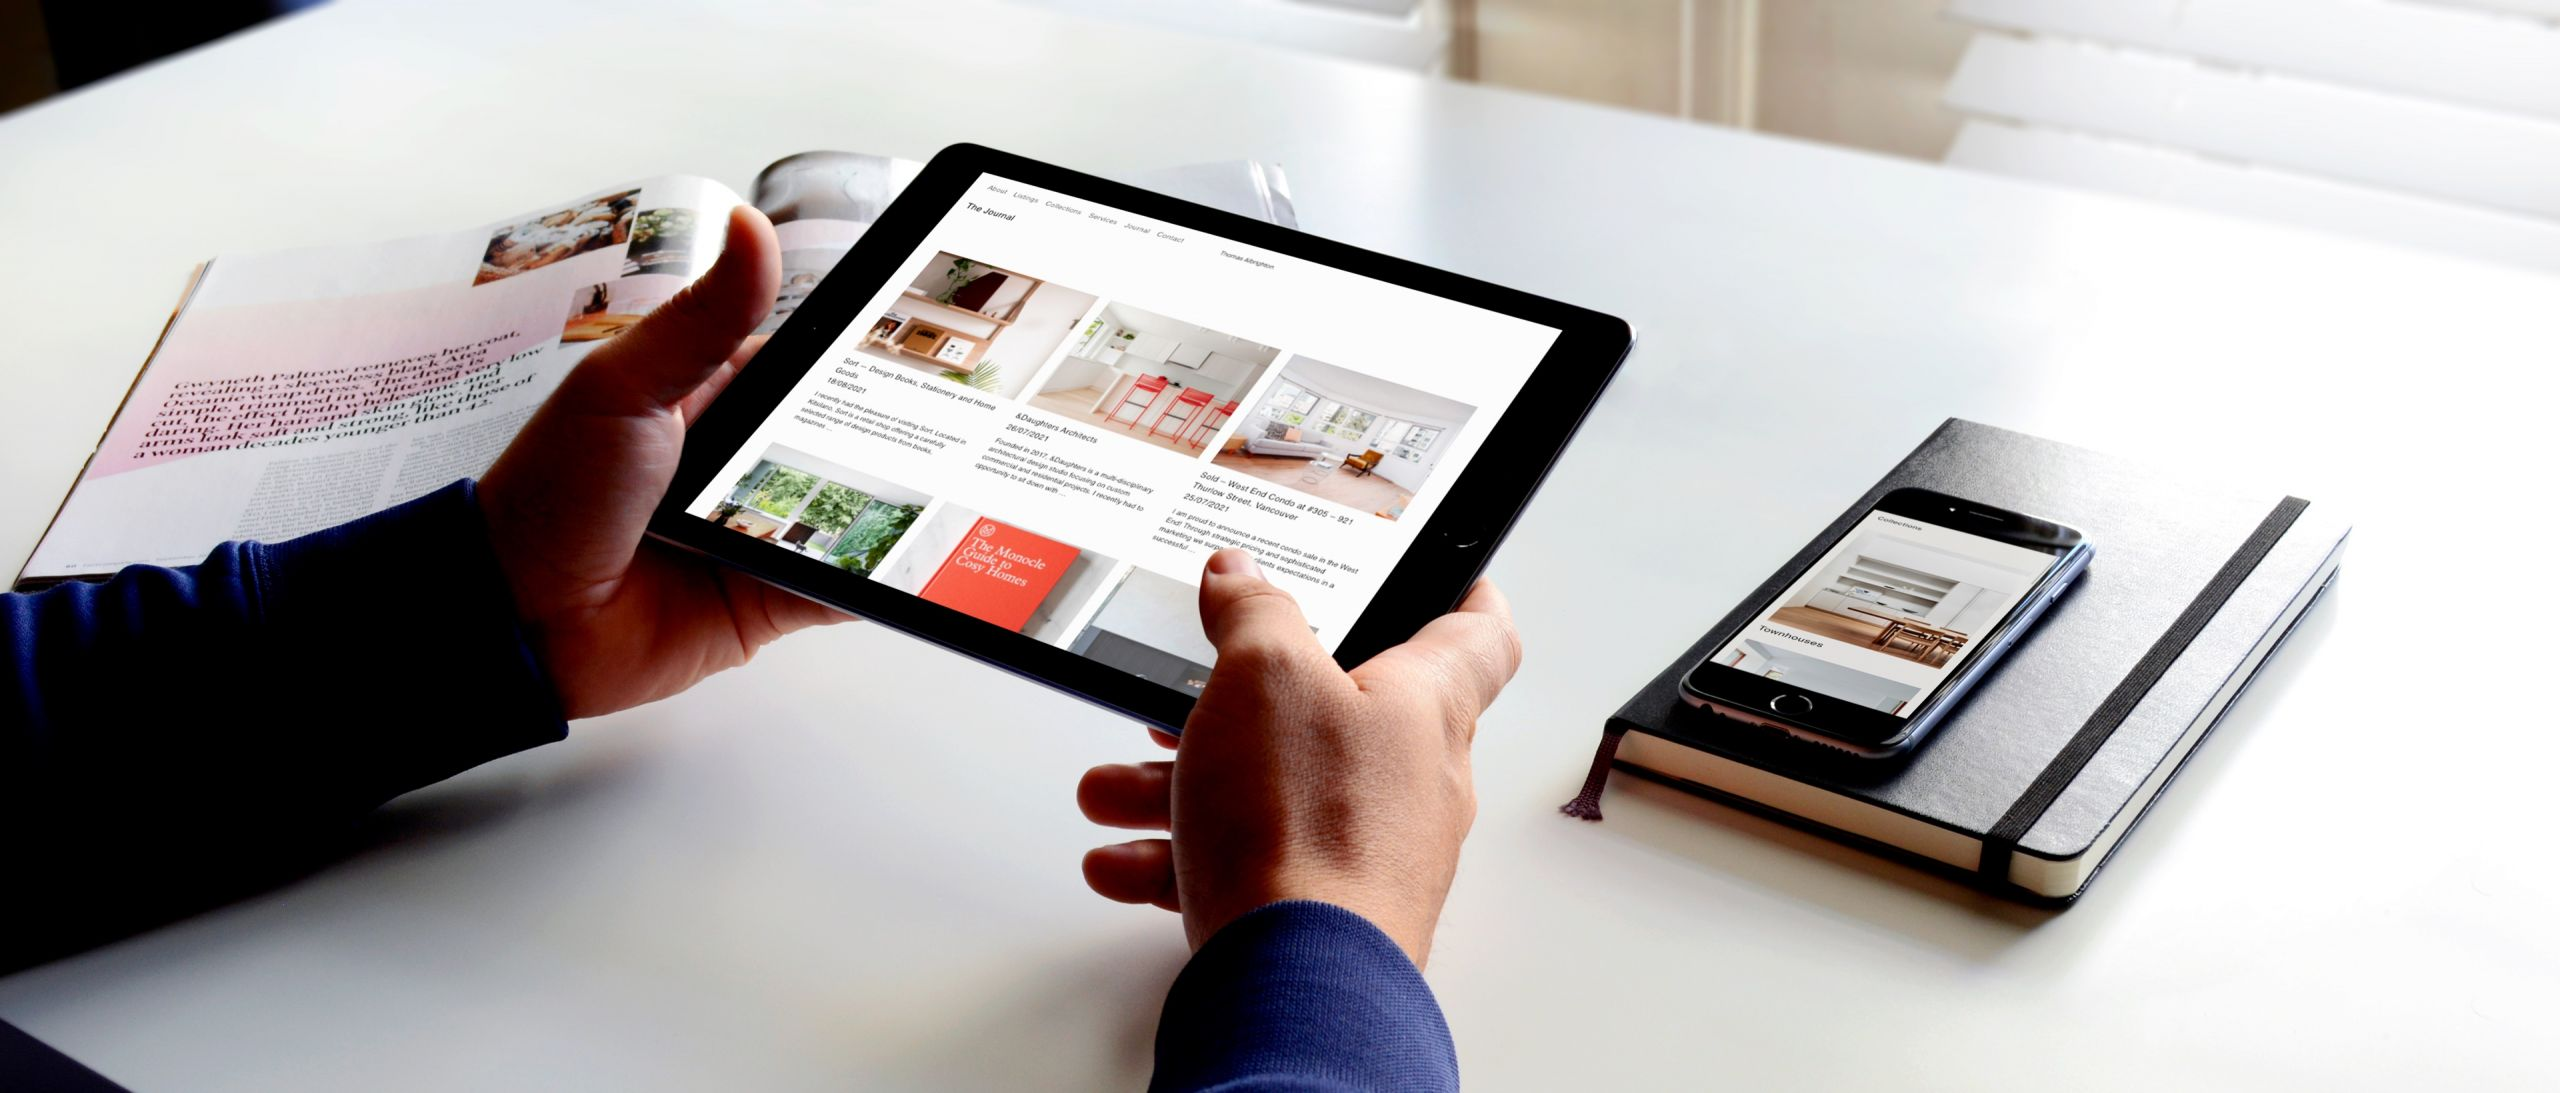 Perfect brand consistency on mobile tablet and desktop